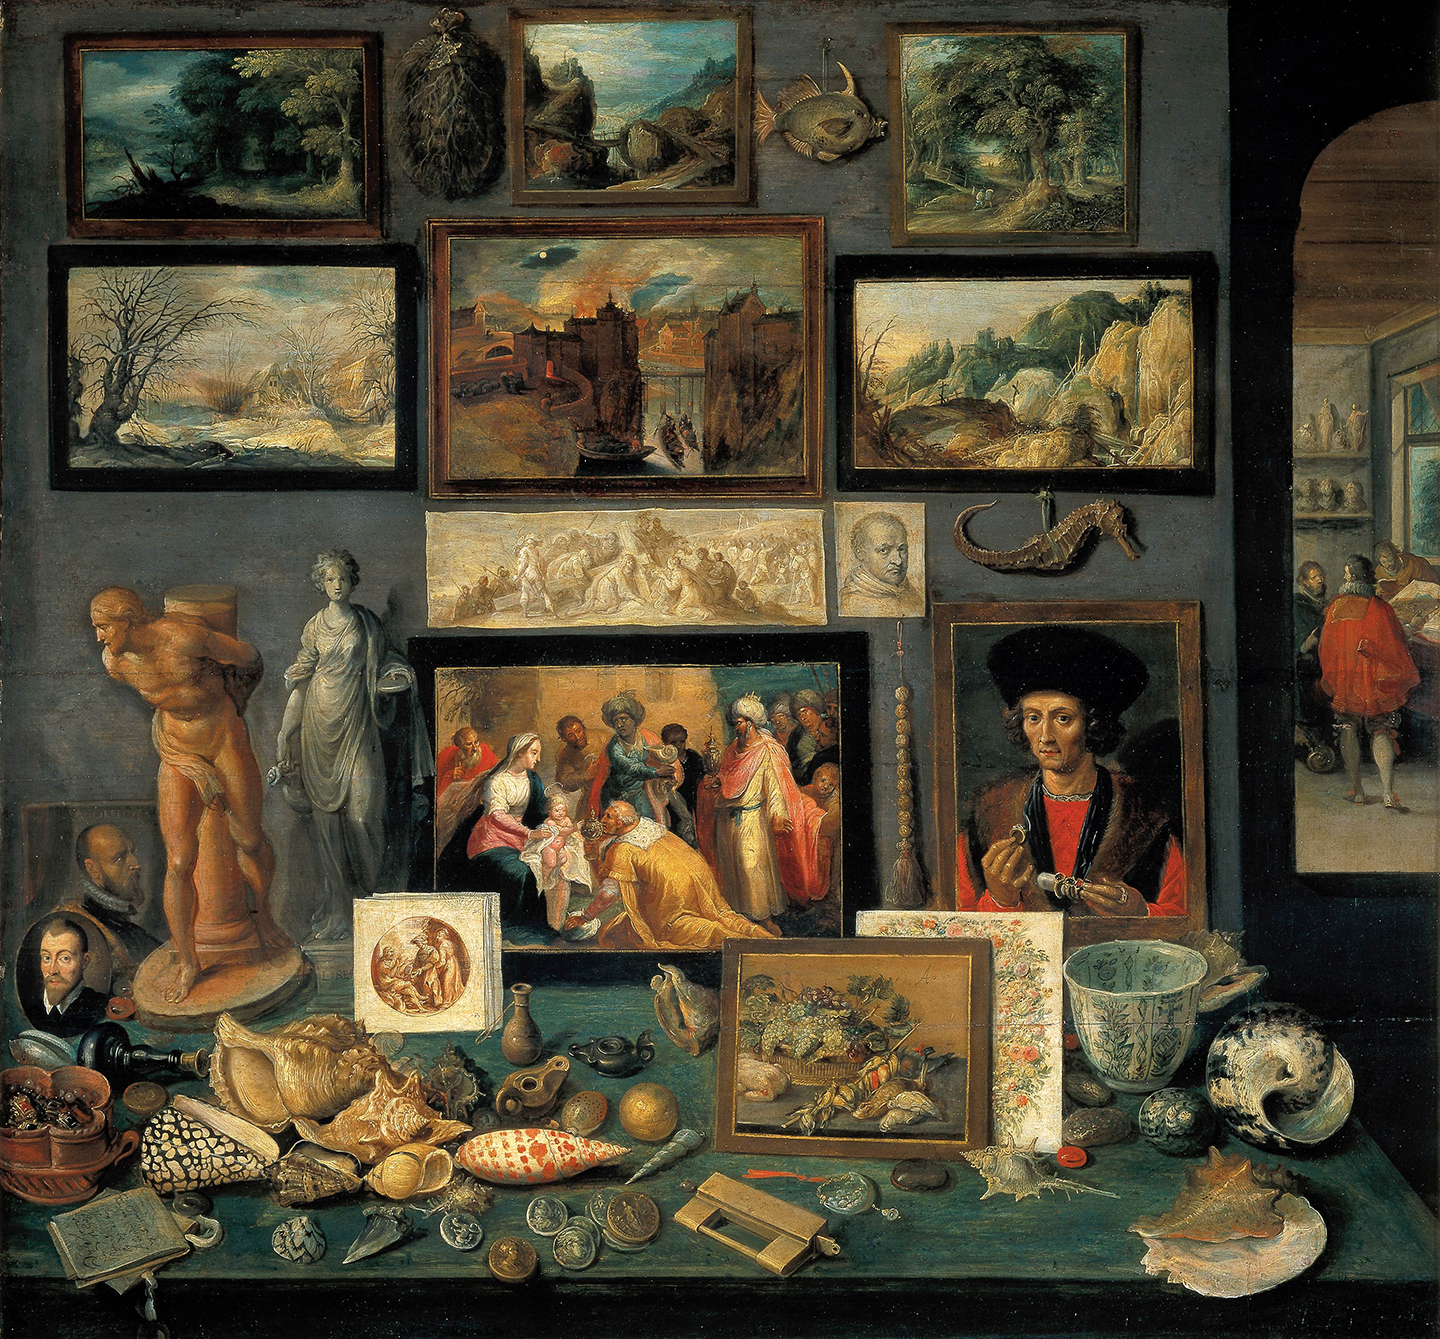 Frans Francken, Chamber of Art and Curiosities, 1636